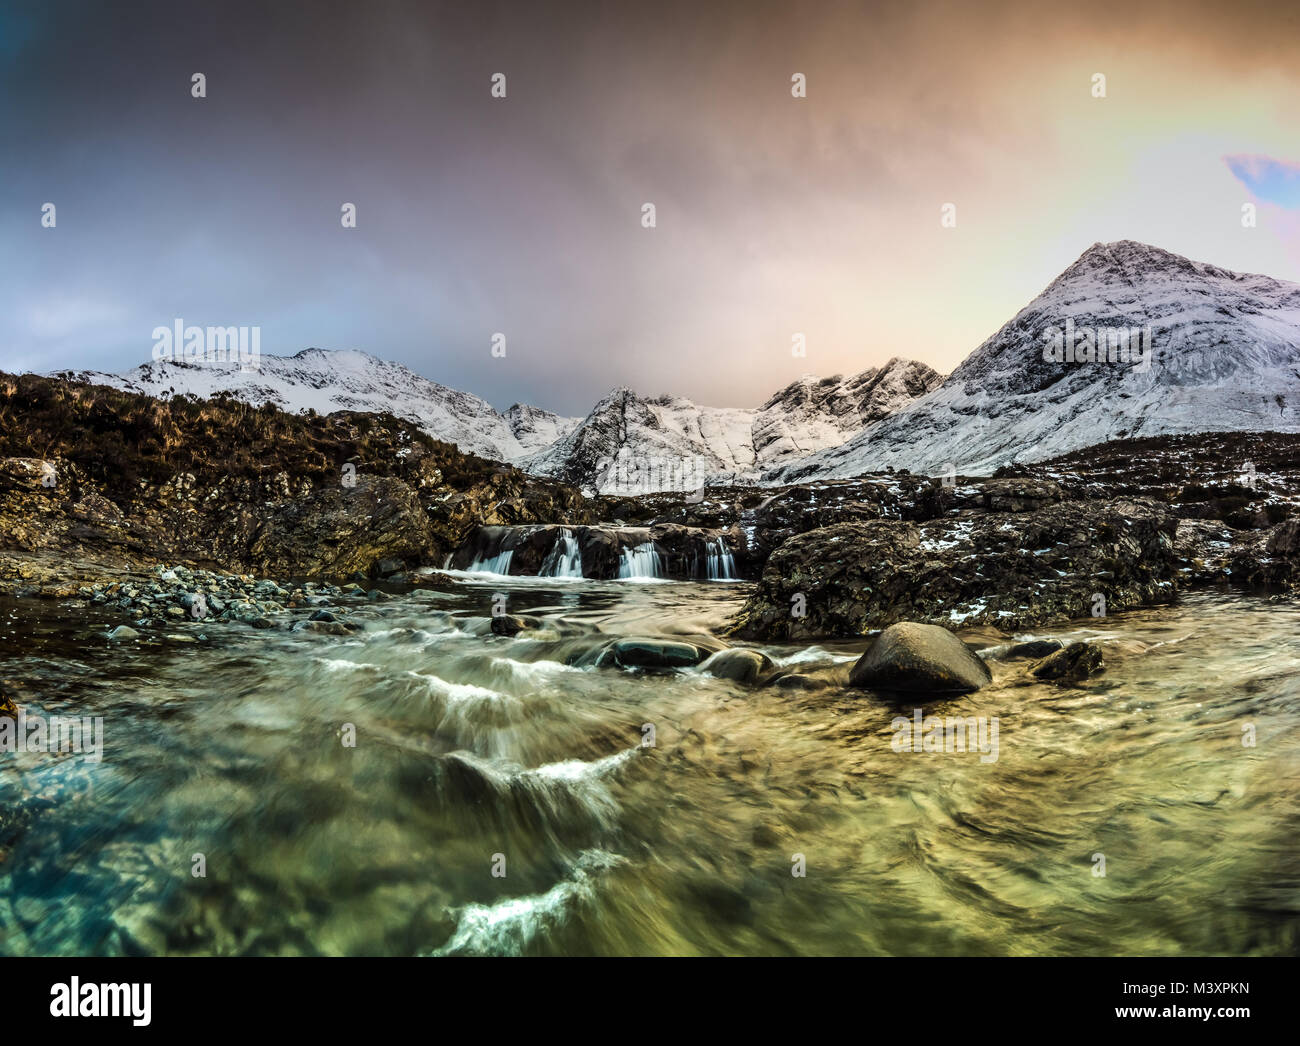 The Fairy Pools in Winter - Isle of Skye, Scotland - Stock Image